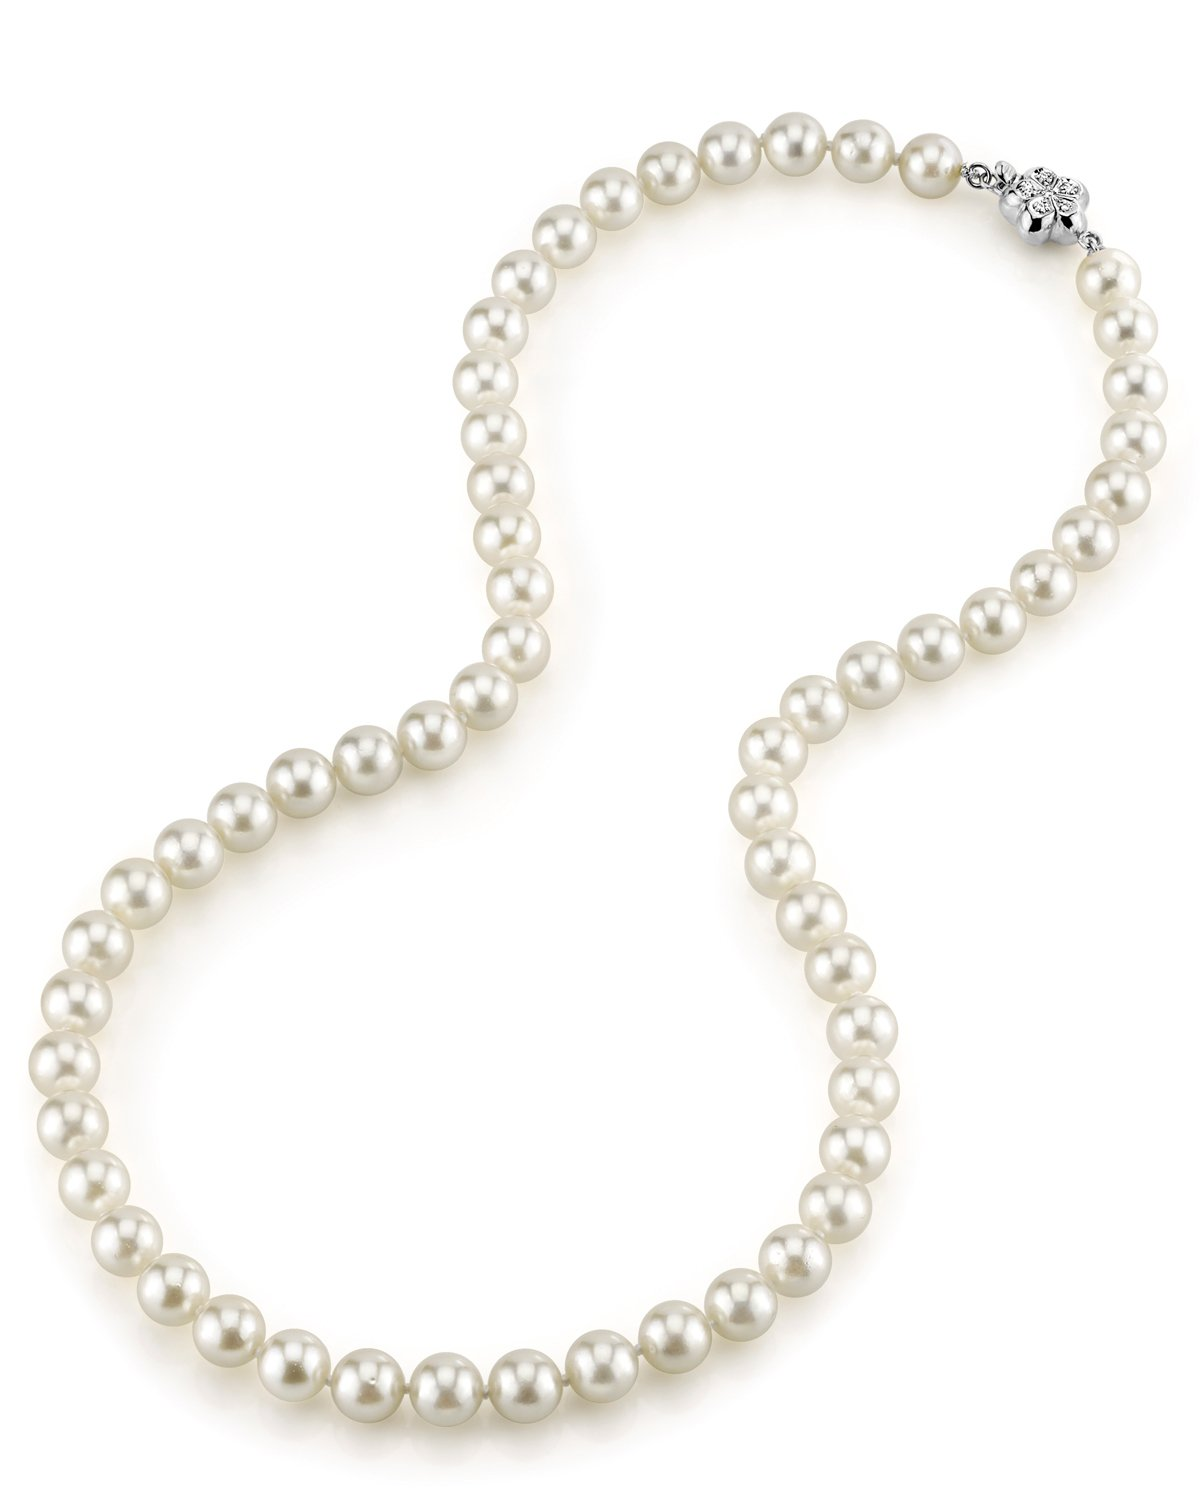 7.0-7.5mm Japanese Akoya White Choker Length Pearl Necklace- AA+ Quality